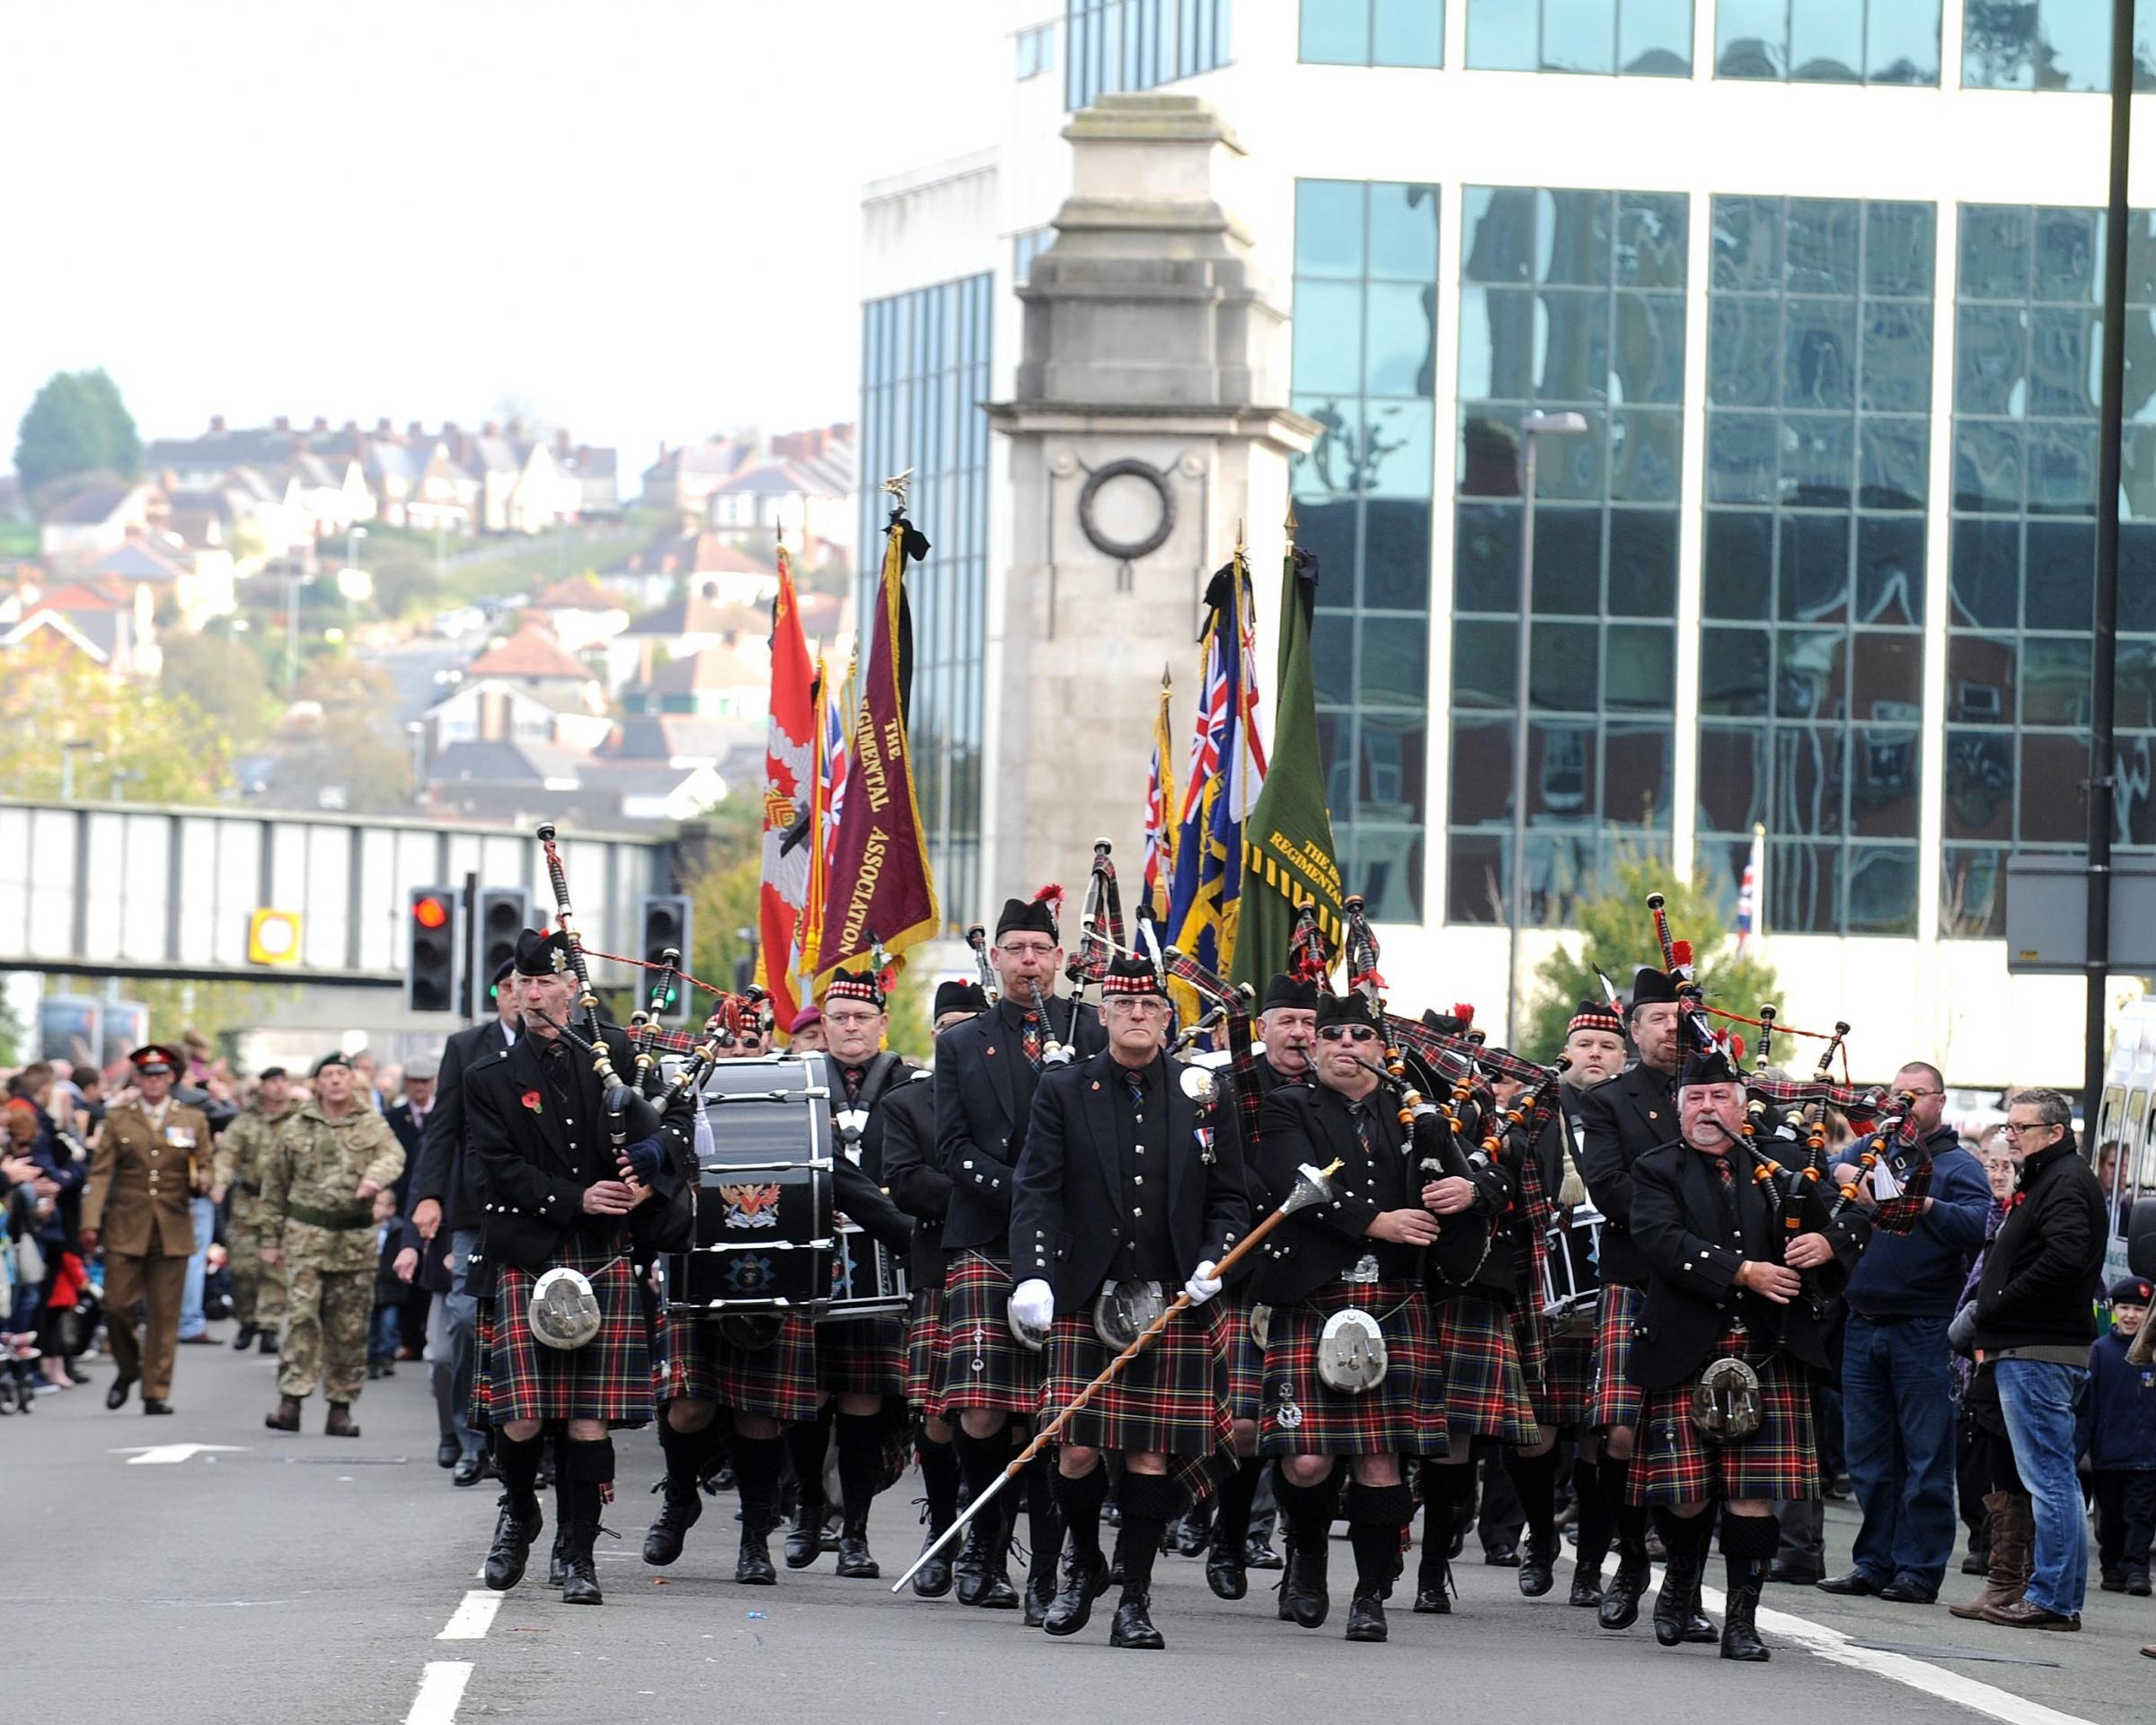 Details revealed for Newport's Remembrance Day parade and service. Picture: www.christinsleyphotography.co.uk